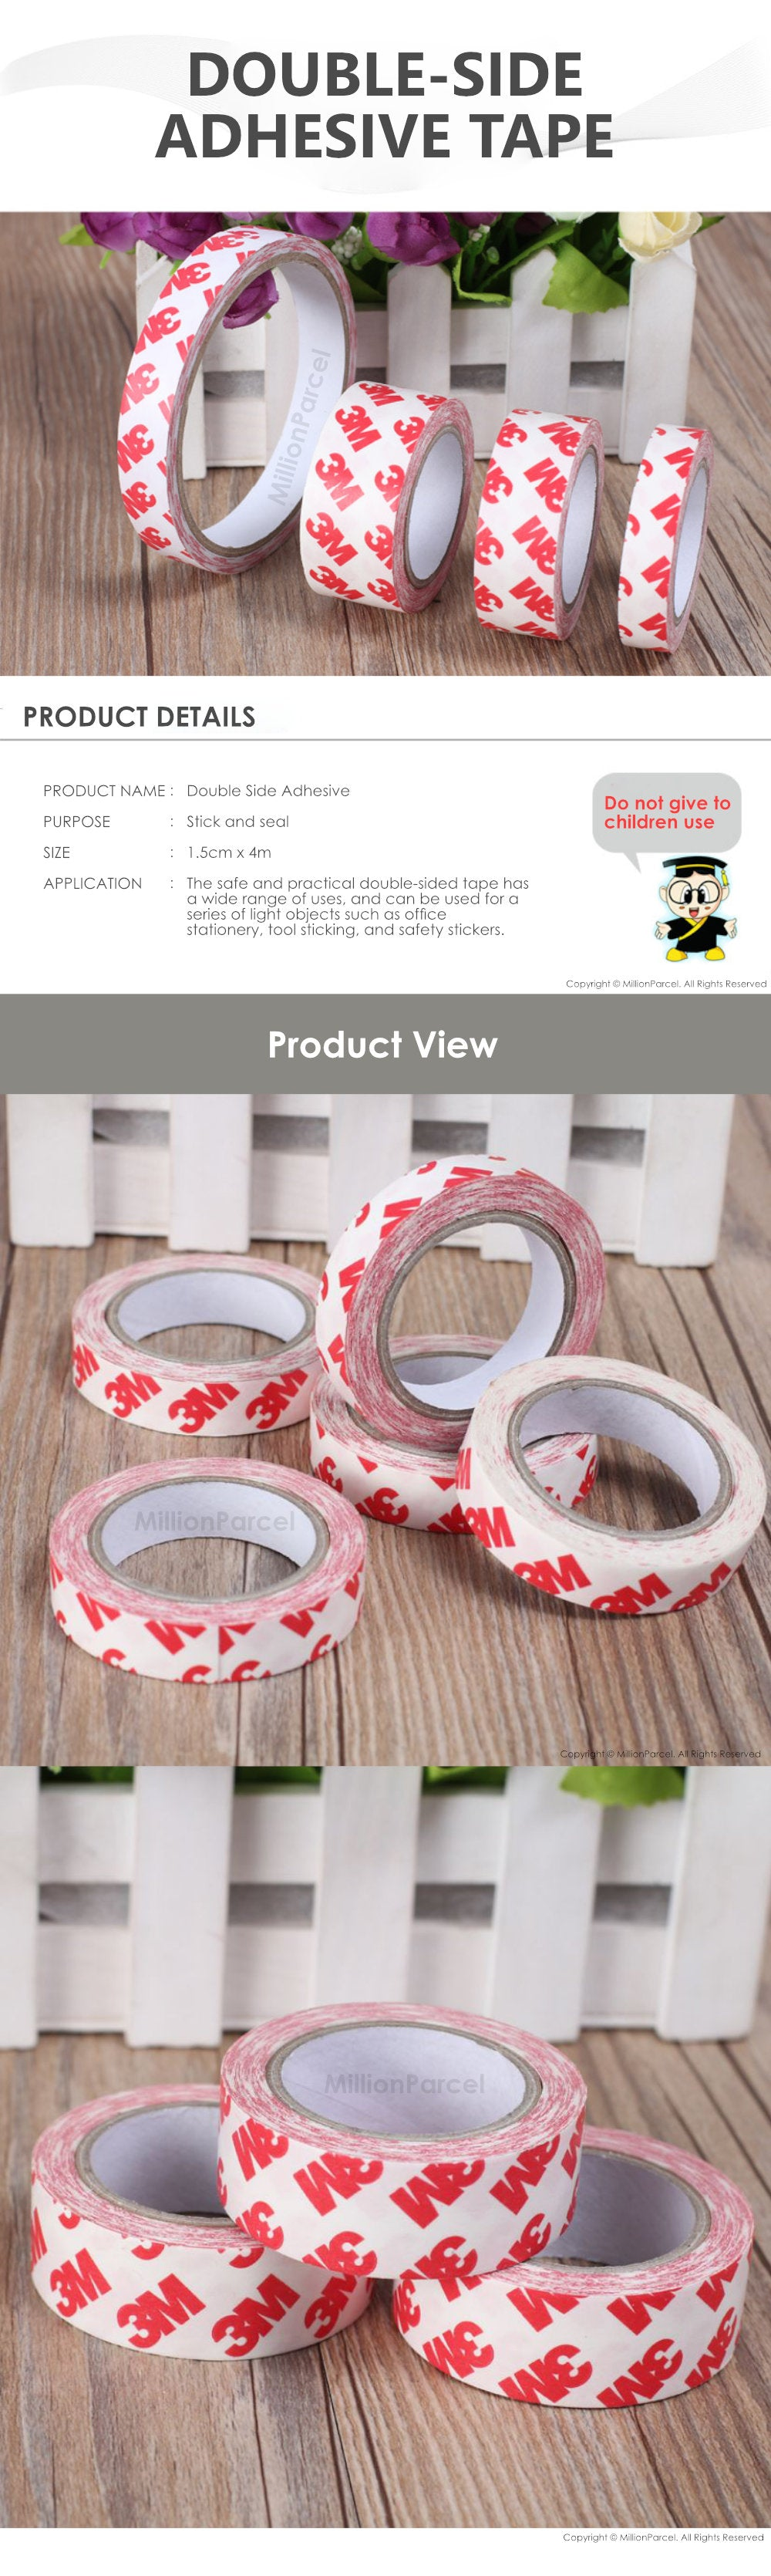 Double Side Adhesive Tape - MillionParcel